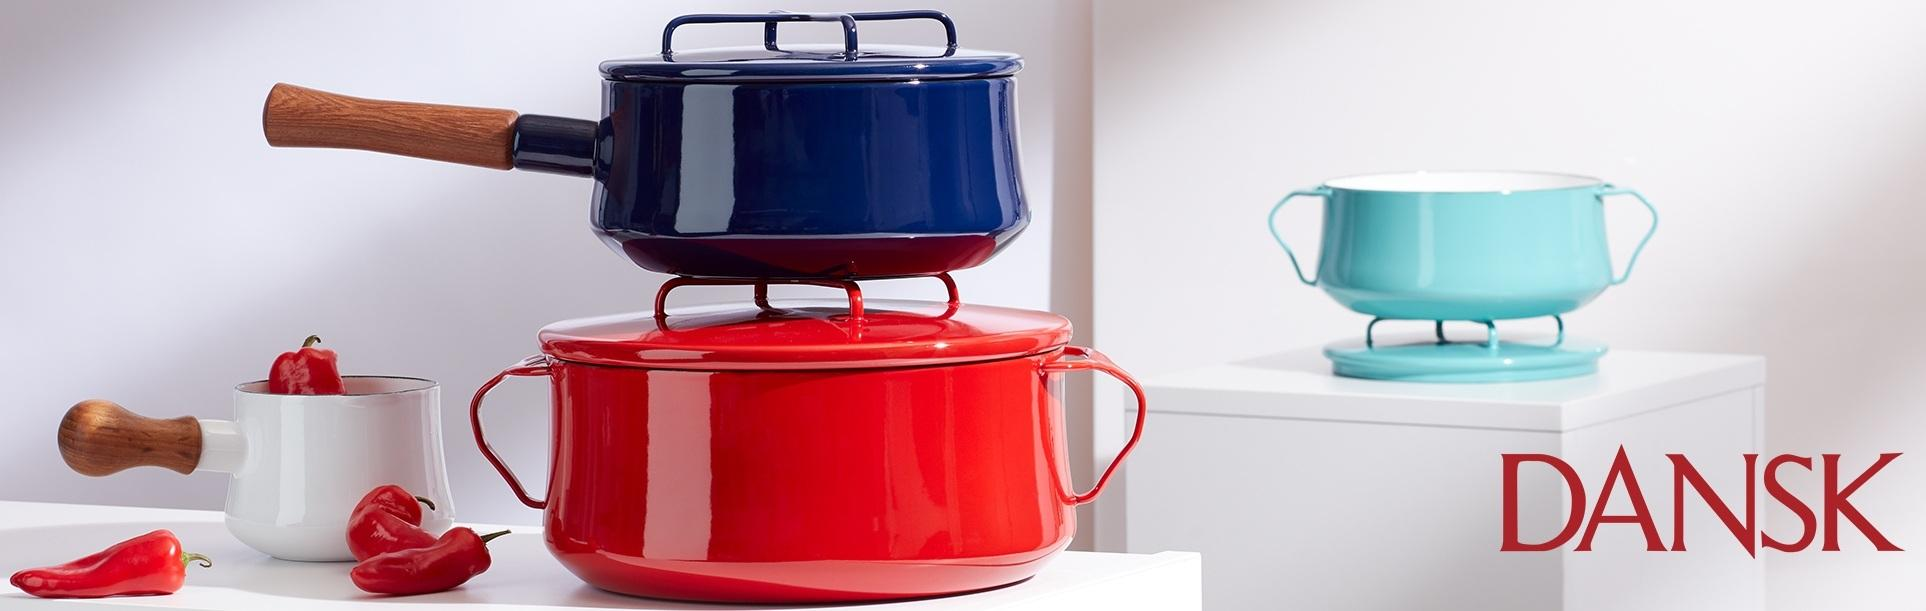 Dansk lifestyle products slide 2